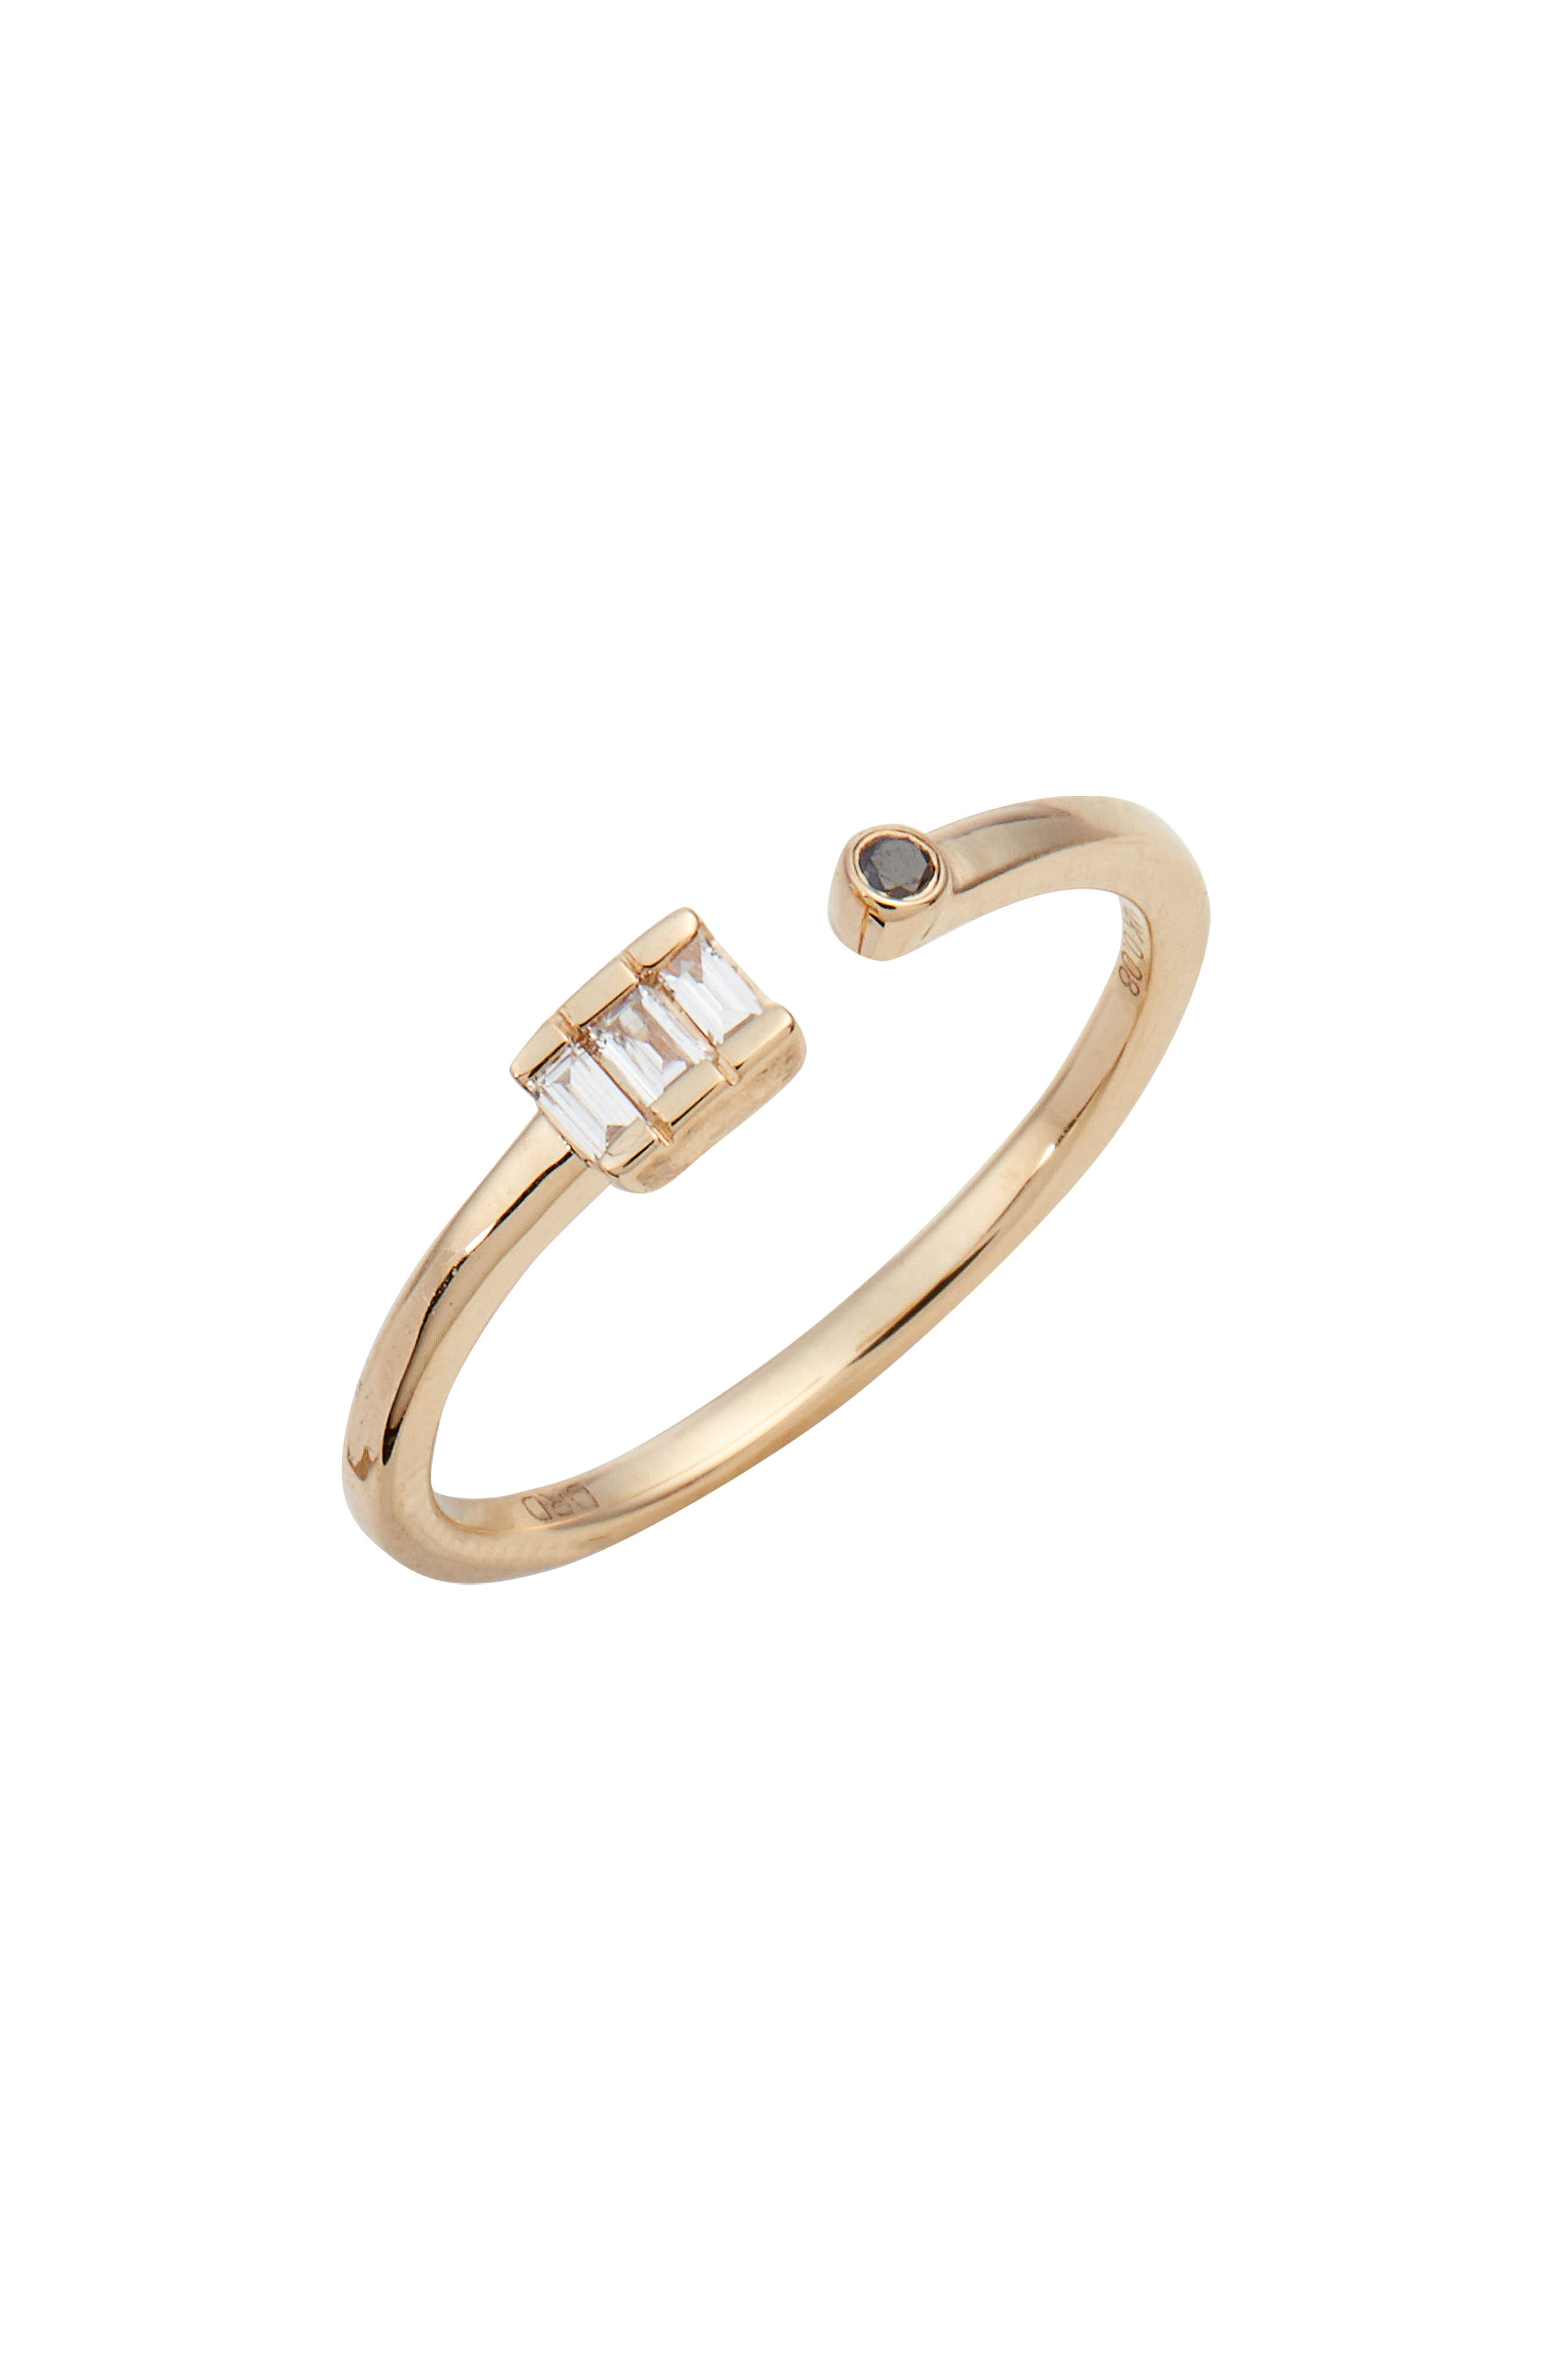 Dana Rebecca Designs Sadie Diamond Bypass Ring